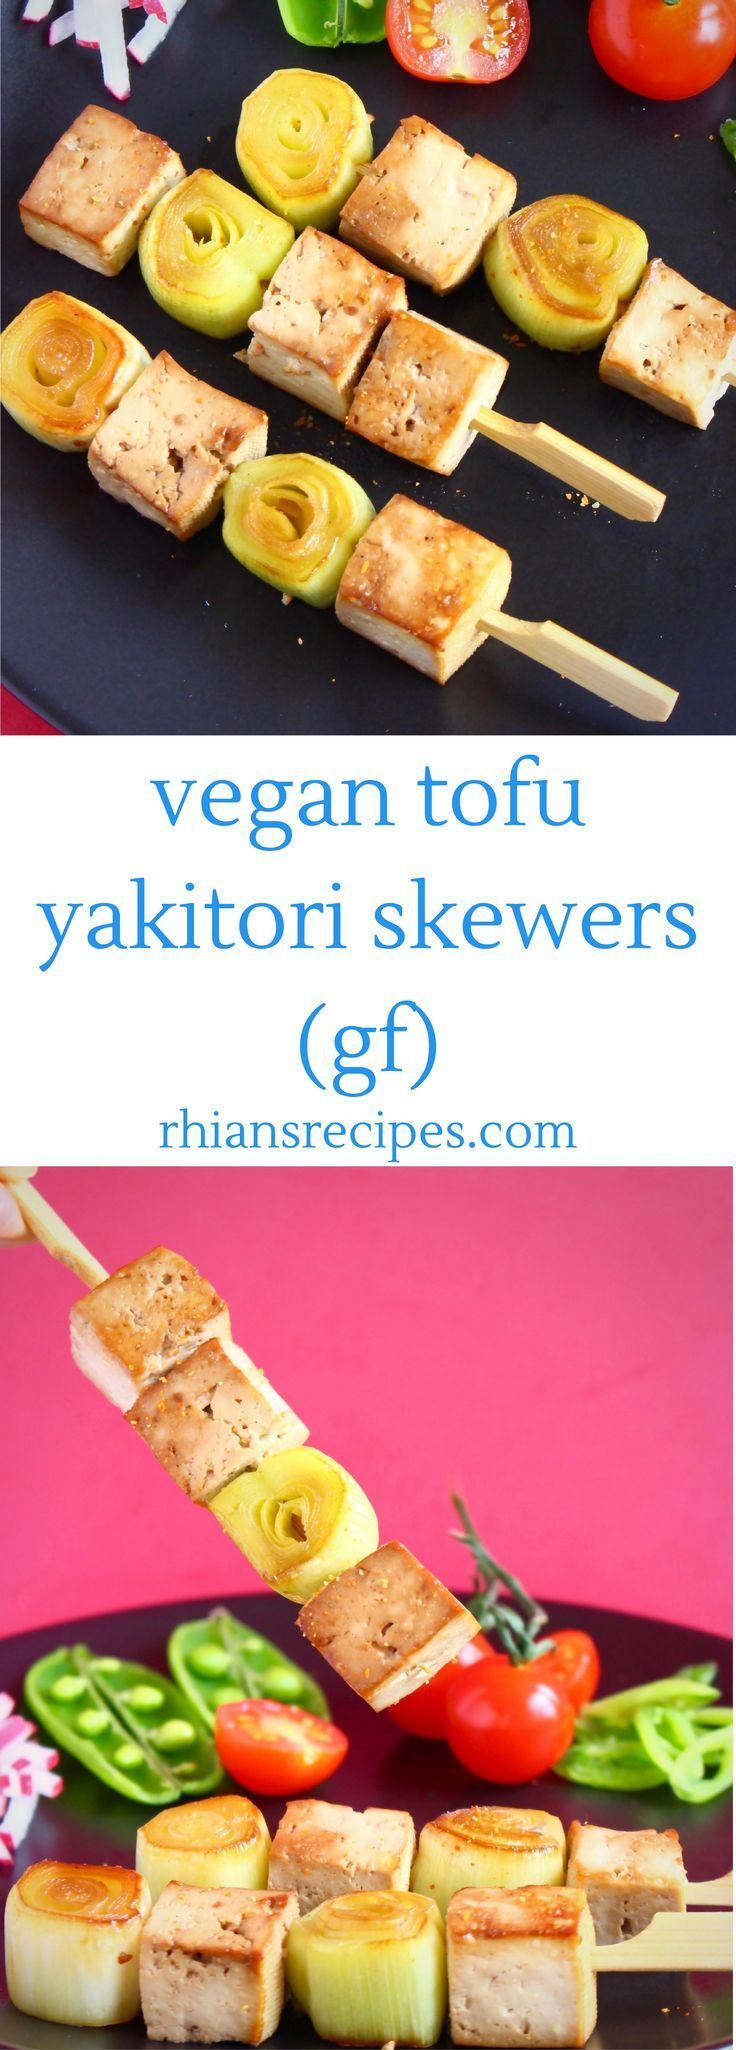 These Vegan Tofu Yakitori Skewers are super easy to make and just as delicious as the traditional chicken version! Gluten-free. Makes a great appetiser or main course.